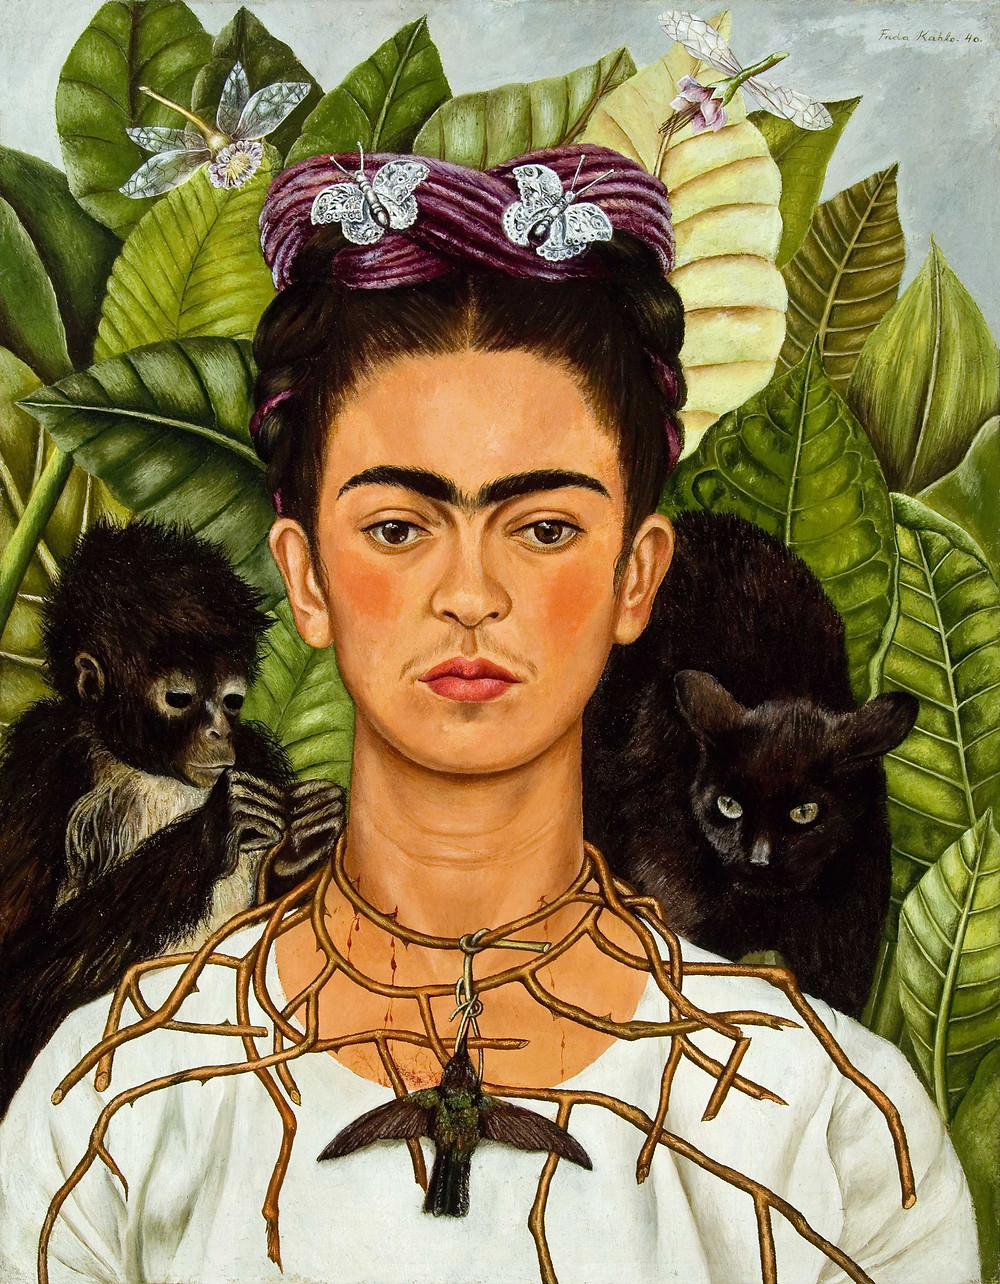 Self-Portrait with Thorn Necklace and Hummingbird, Frida Kahlo